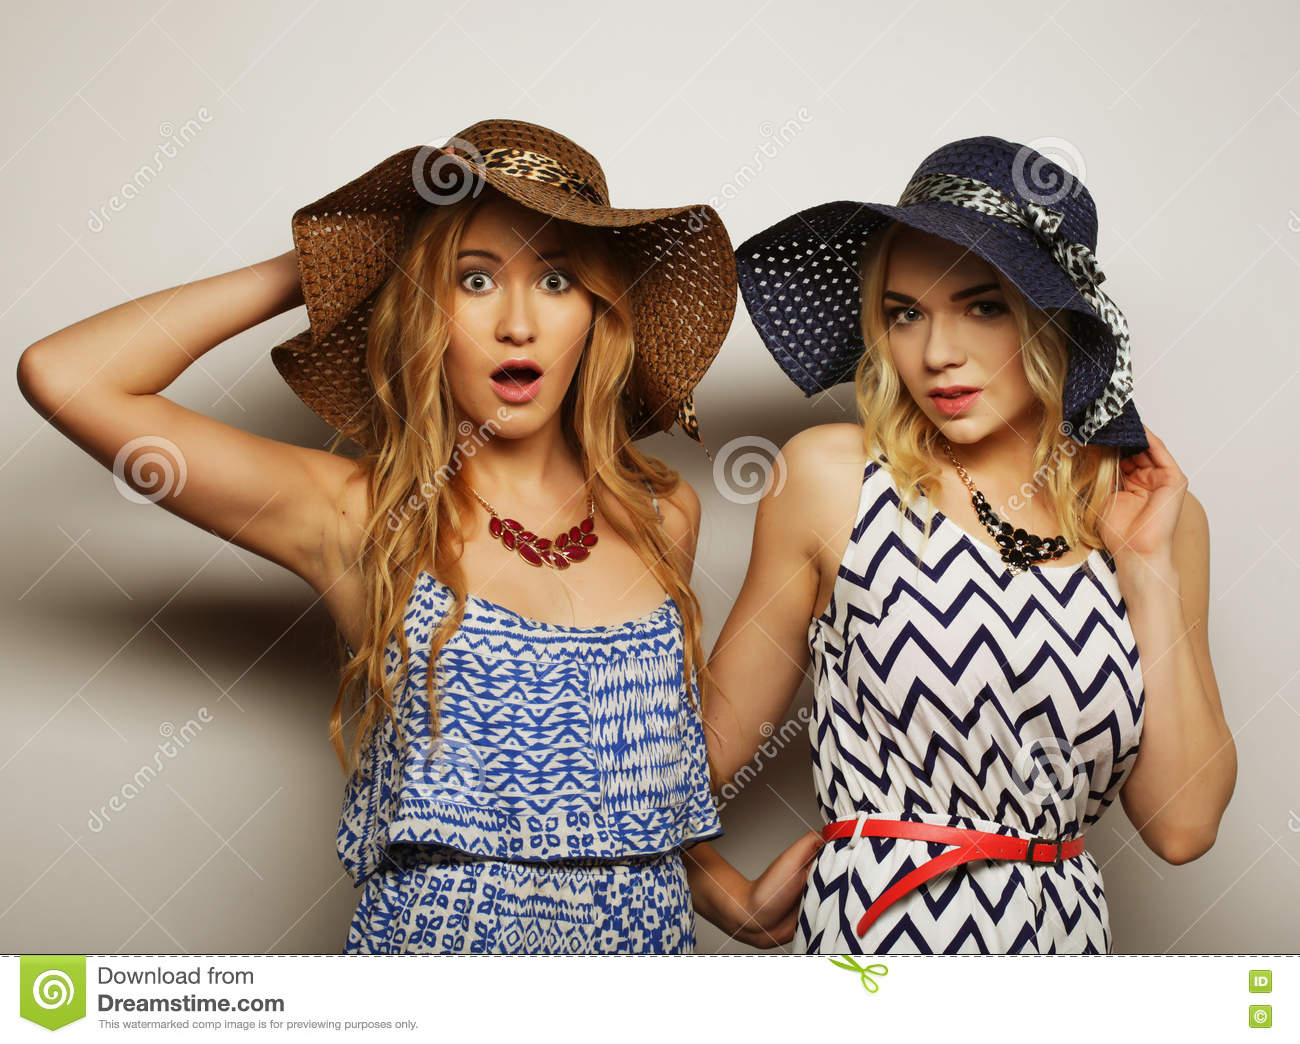 a14370d7ef81 Fashion concept  two young women in summer fashion dress and straw hats